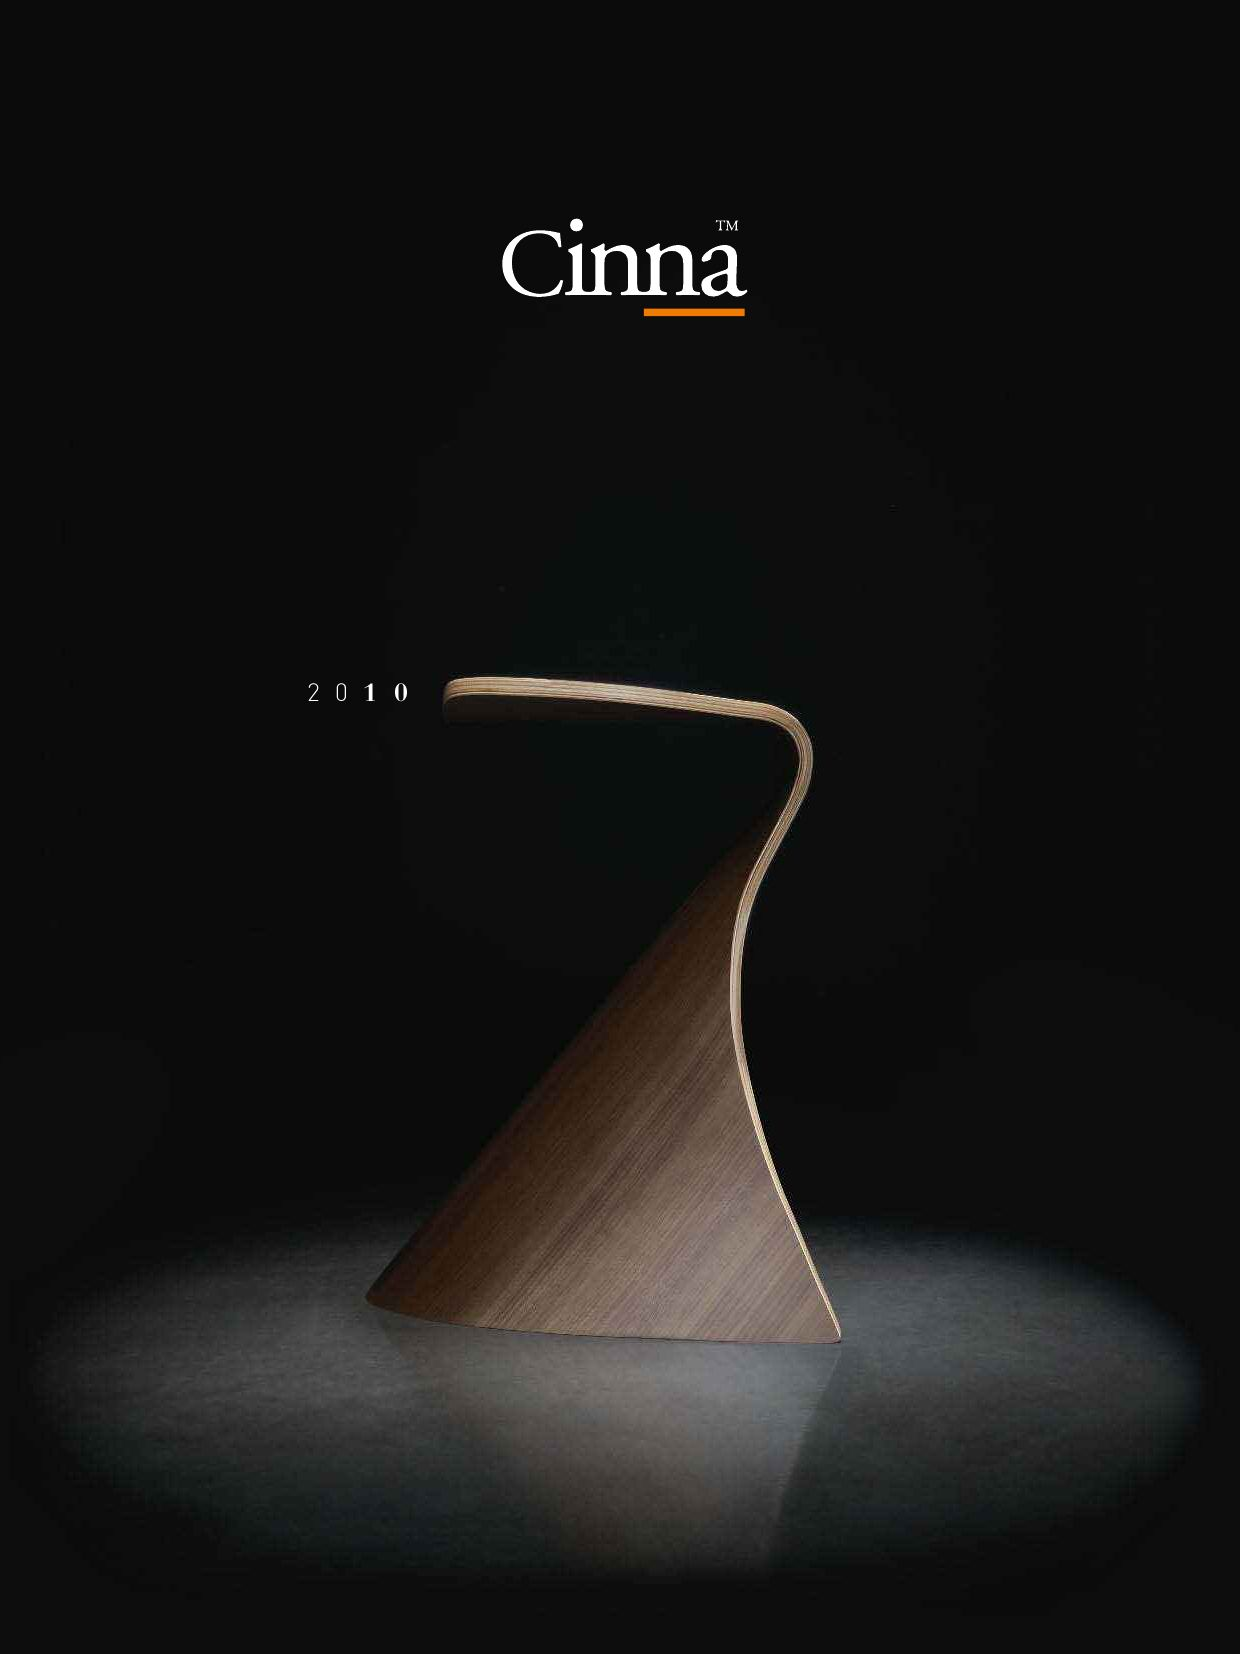 catalogue cinna 2010 by asv mobilier issuu. Black Bedroom Furniture Sets. Home Design Ideas